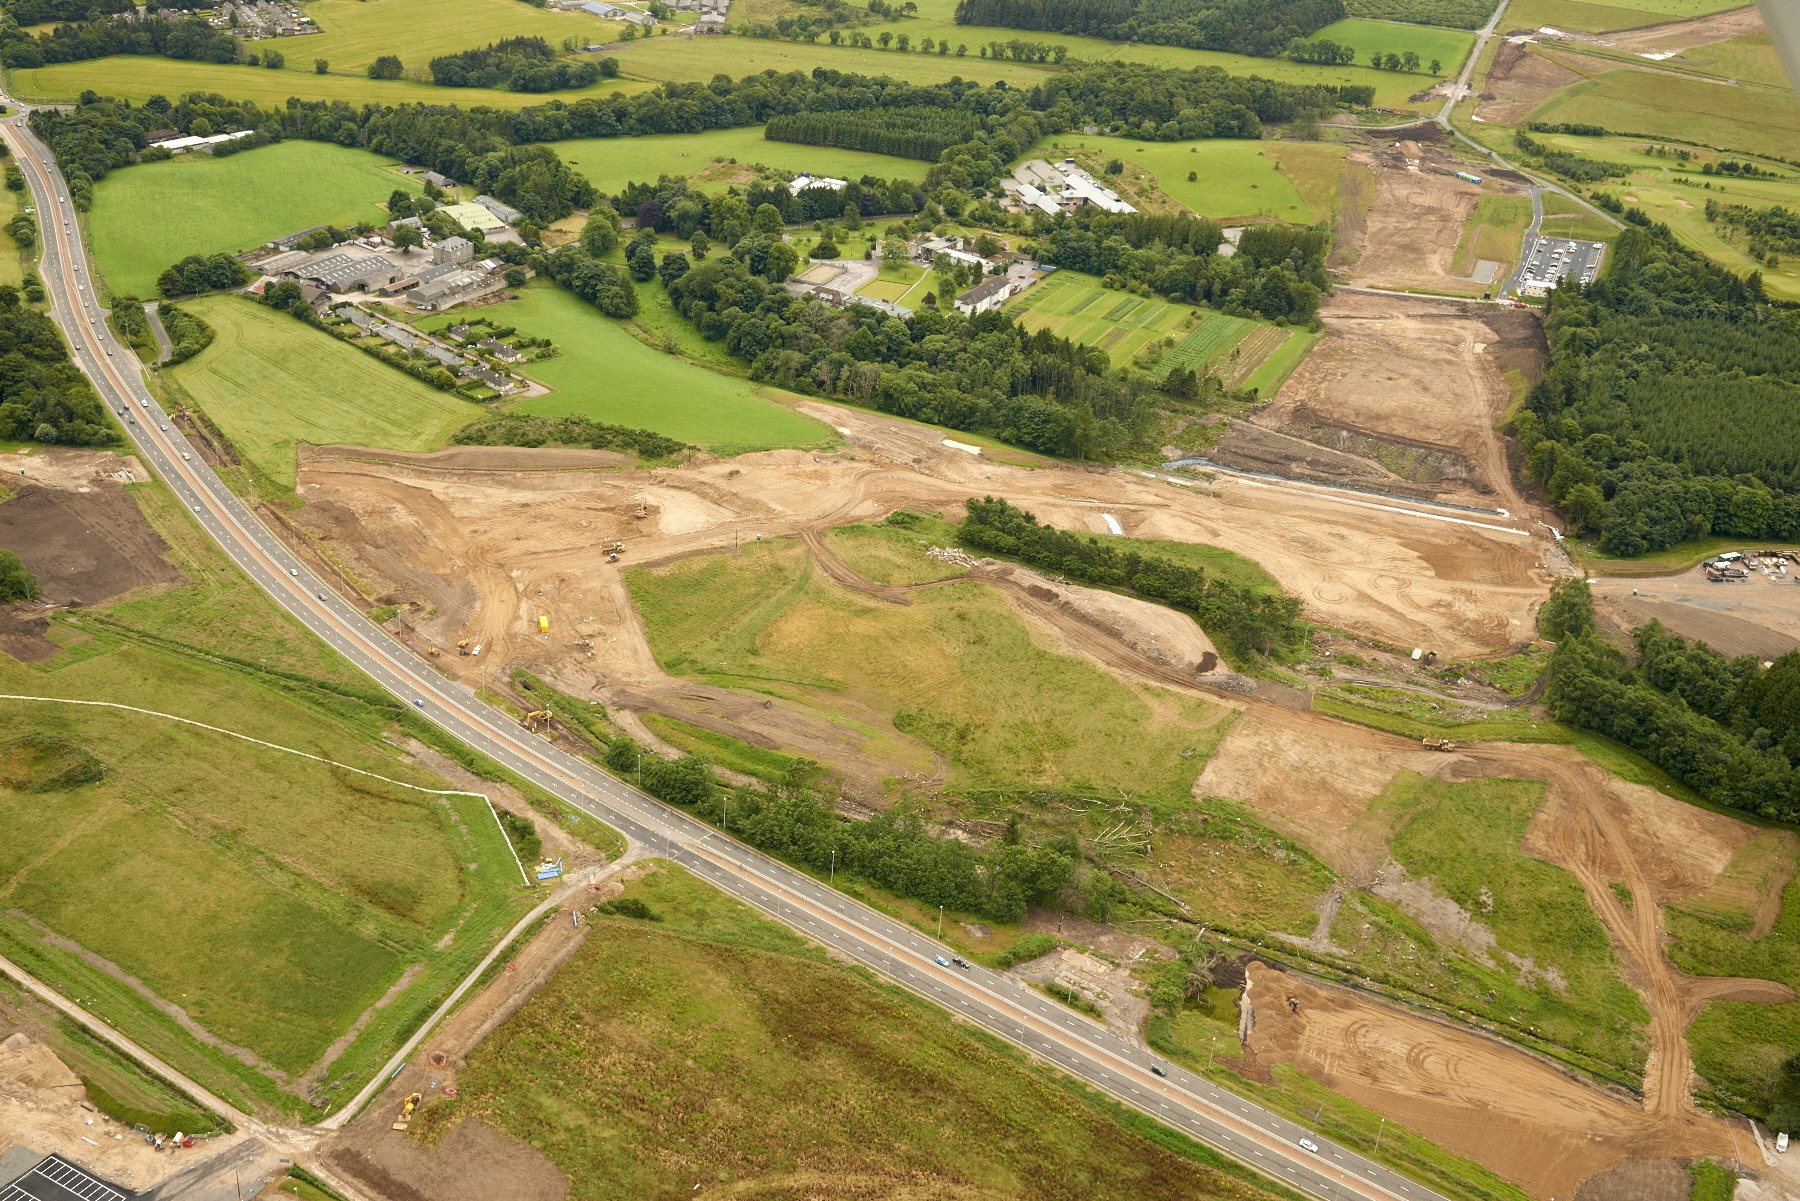 Aerial images show the work taking place at the A96 at Craibstone